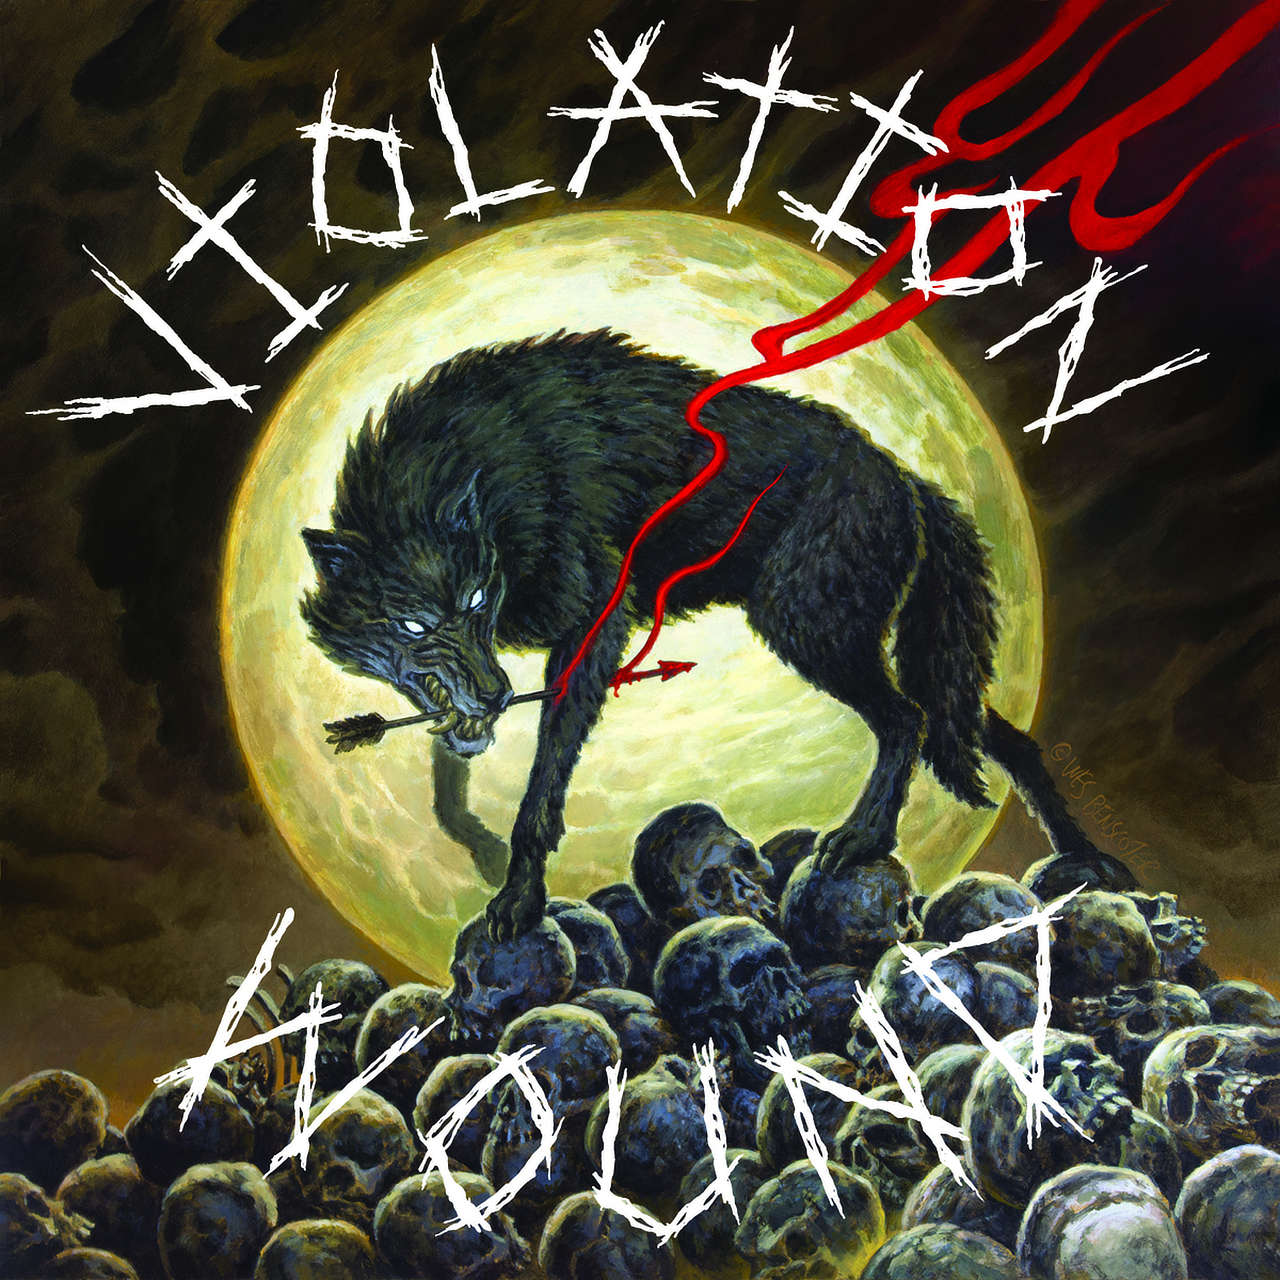 Violation Wound - With Man in Charge (Digipak CD)